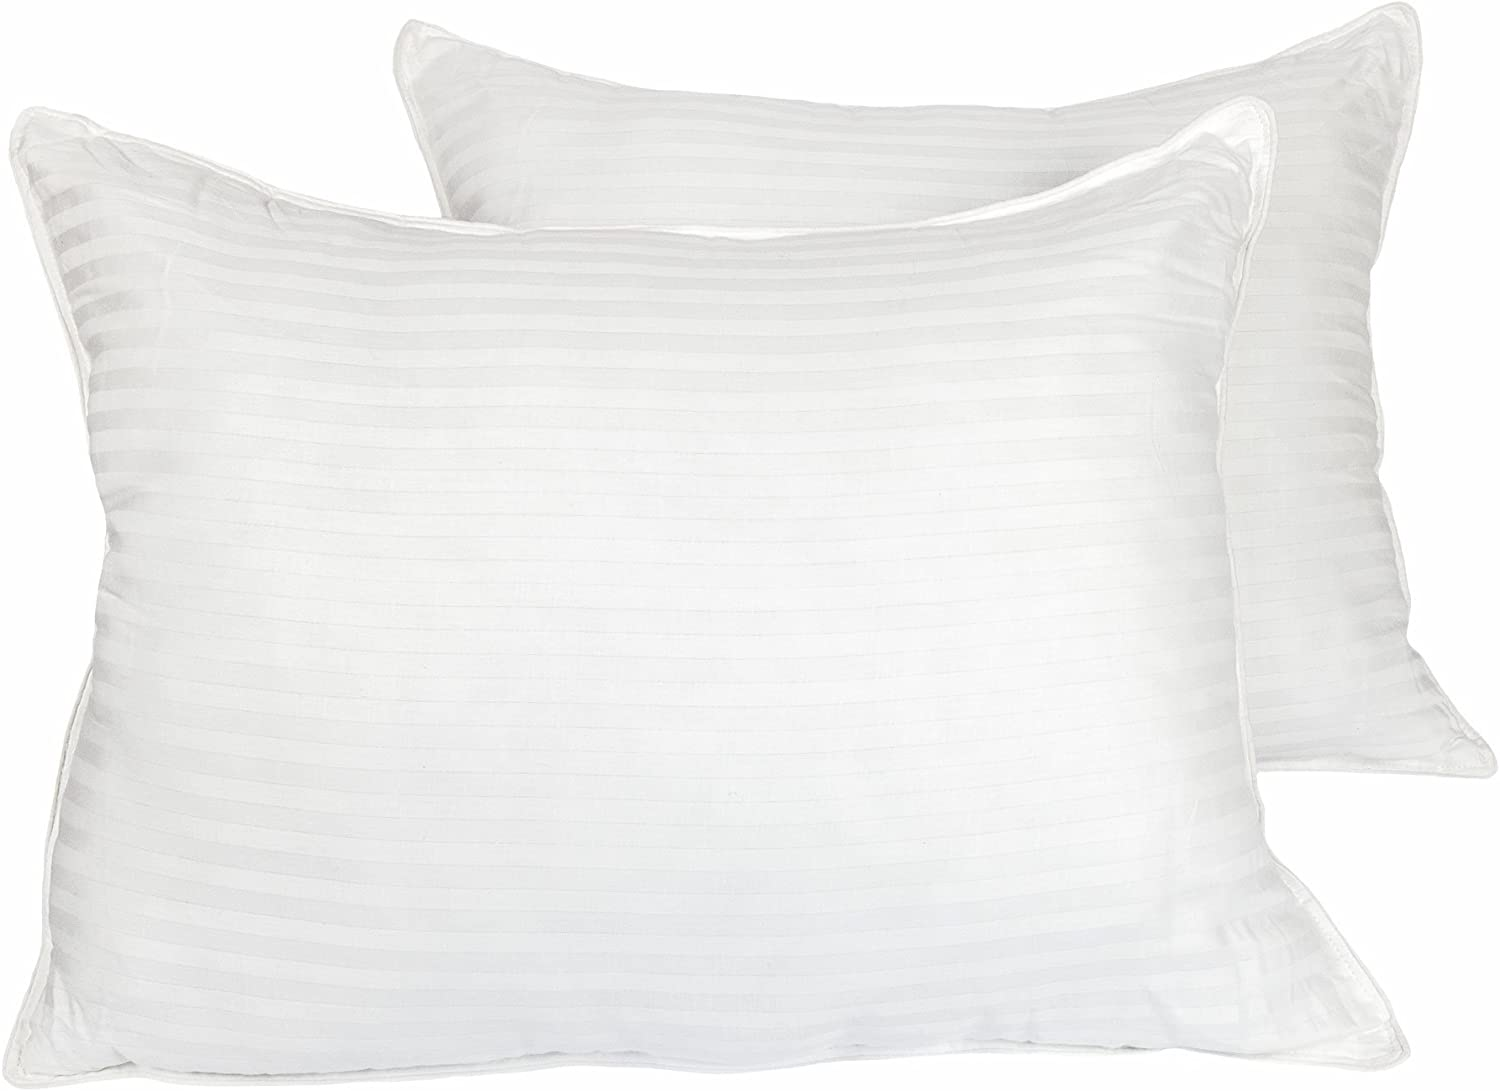 Cozy Bed Medium Firm Hotel Quality Pillow(set of 2), Standard, White, 2 Count